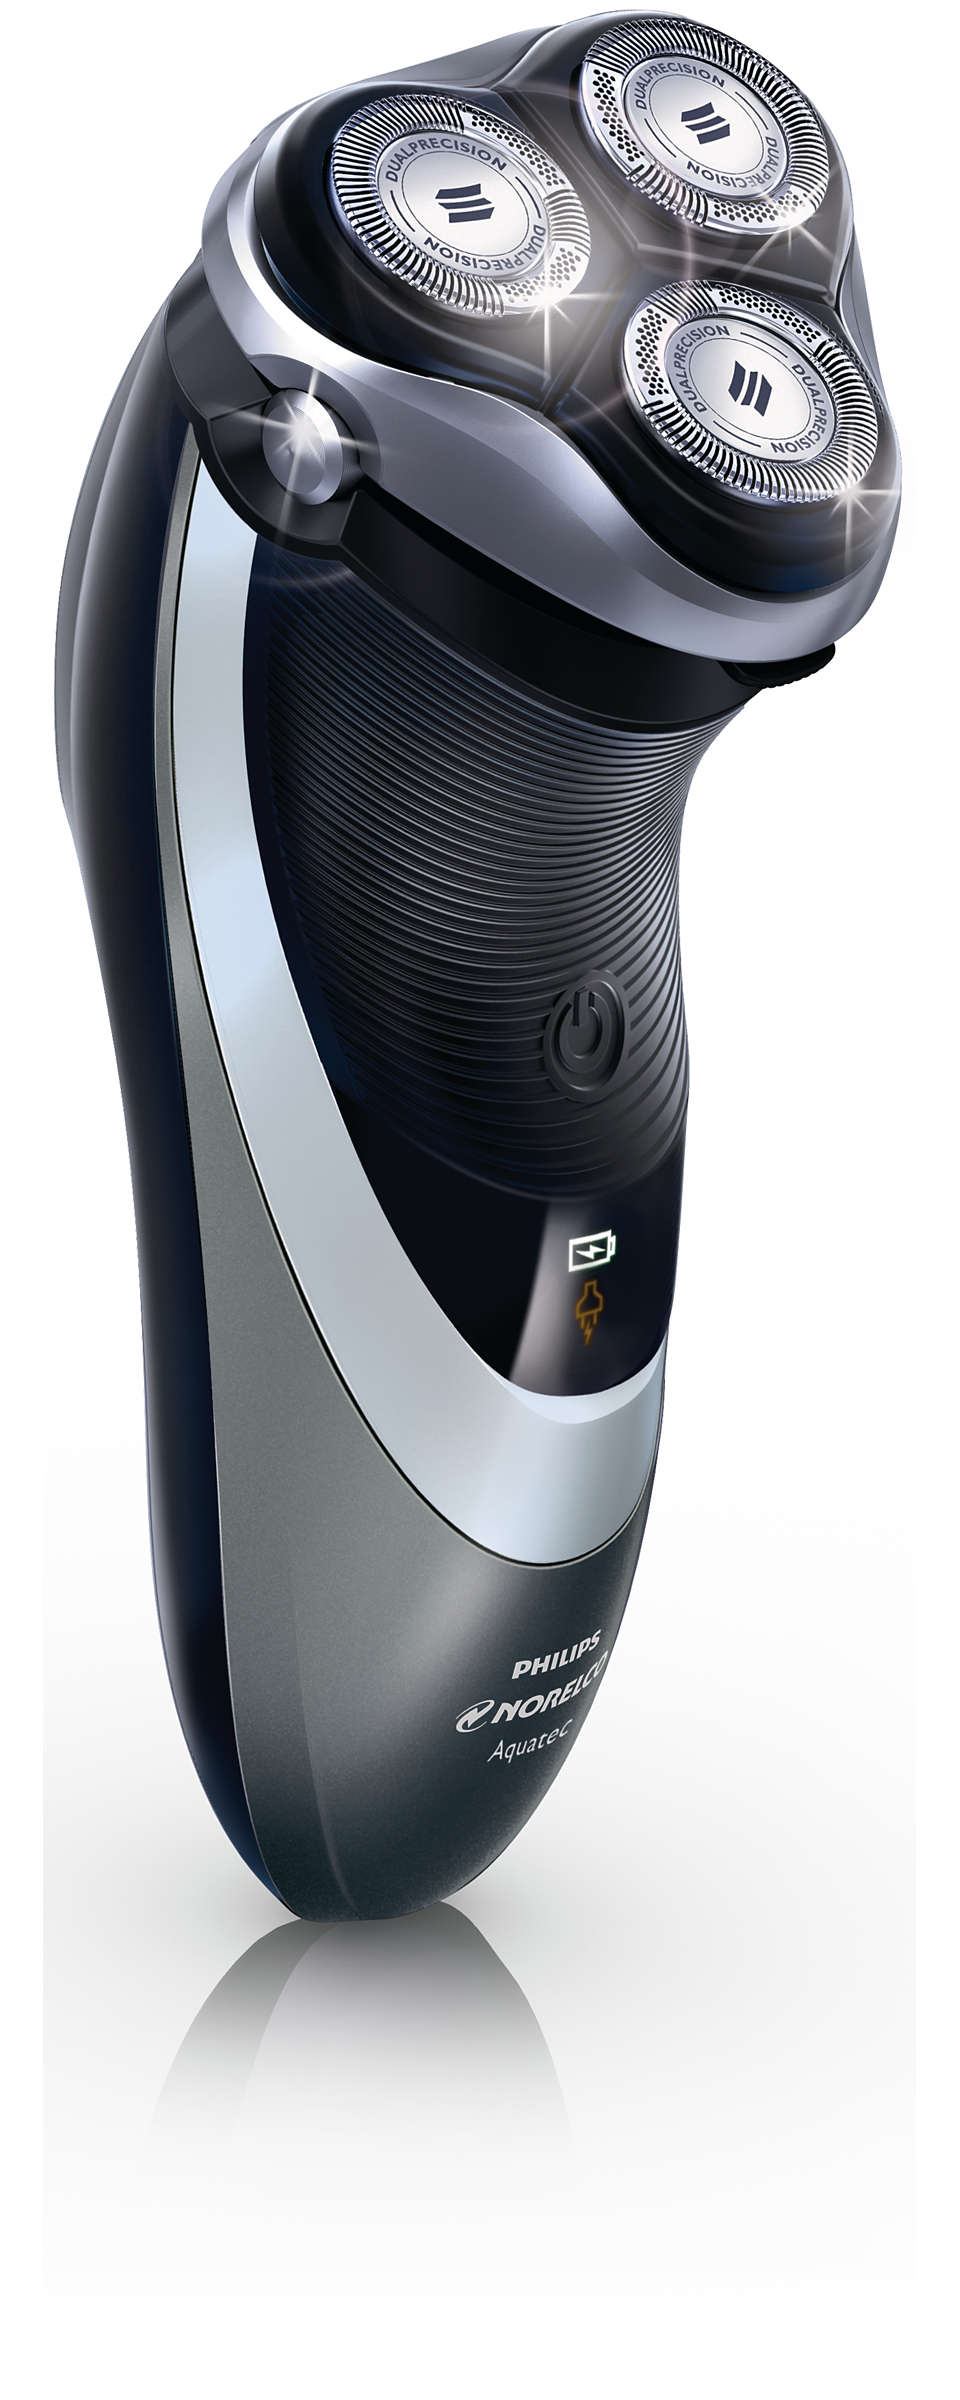 Series 4000 - Protects skin, even on the neck